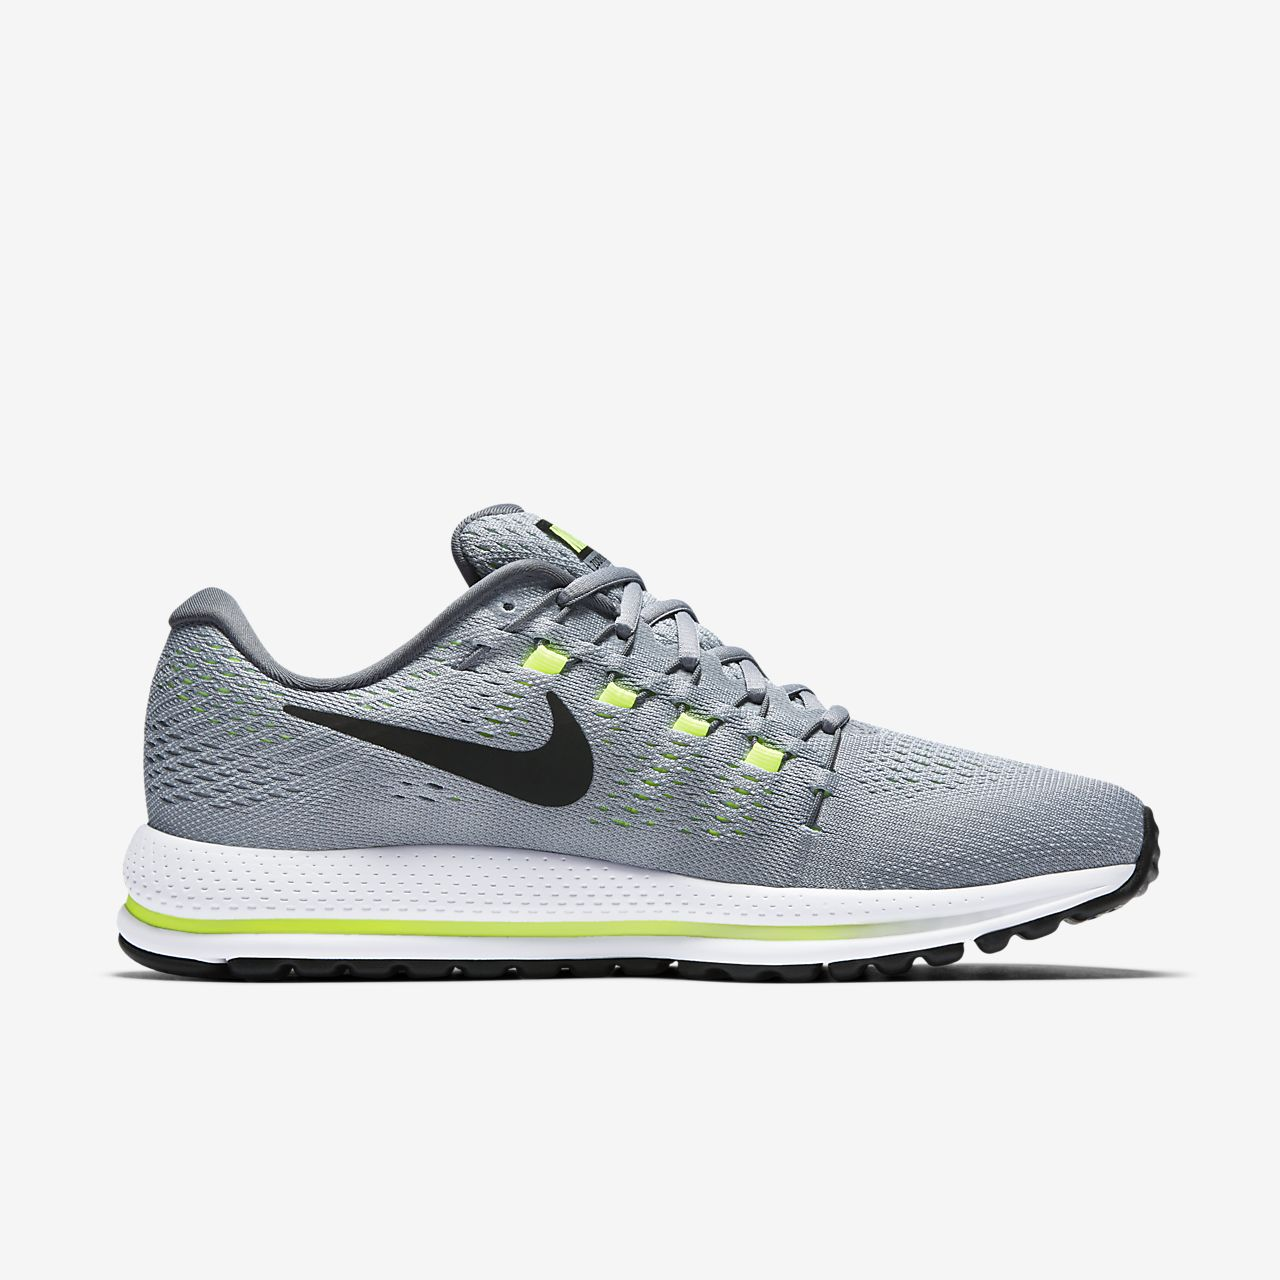 ... Nike Air Zoom Vomero 12 Men's Running Shoe